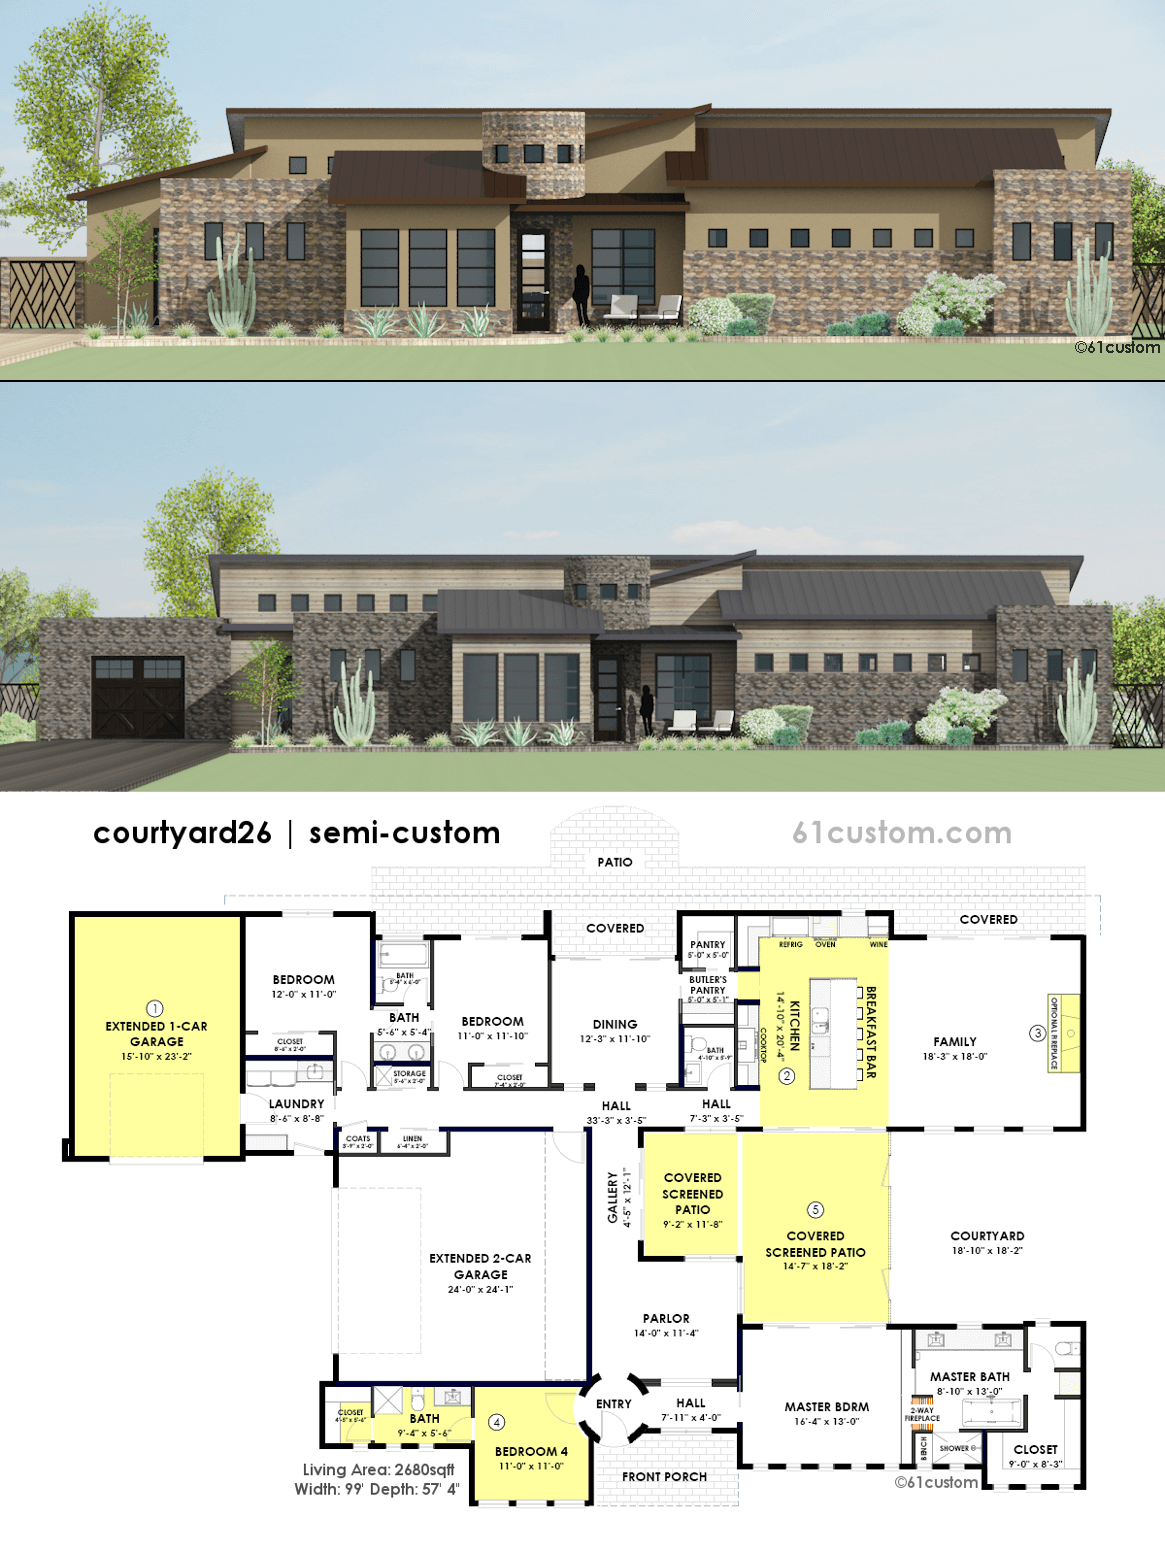 Contemporary side courtyard house plan 61custom for Contemporary building plans